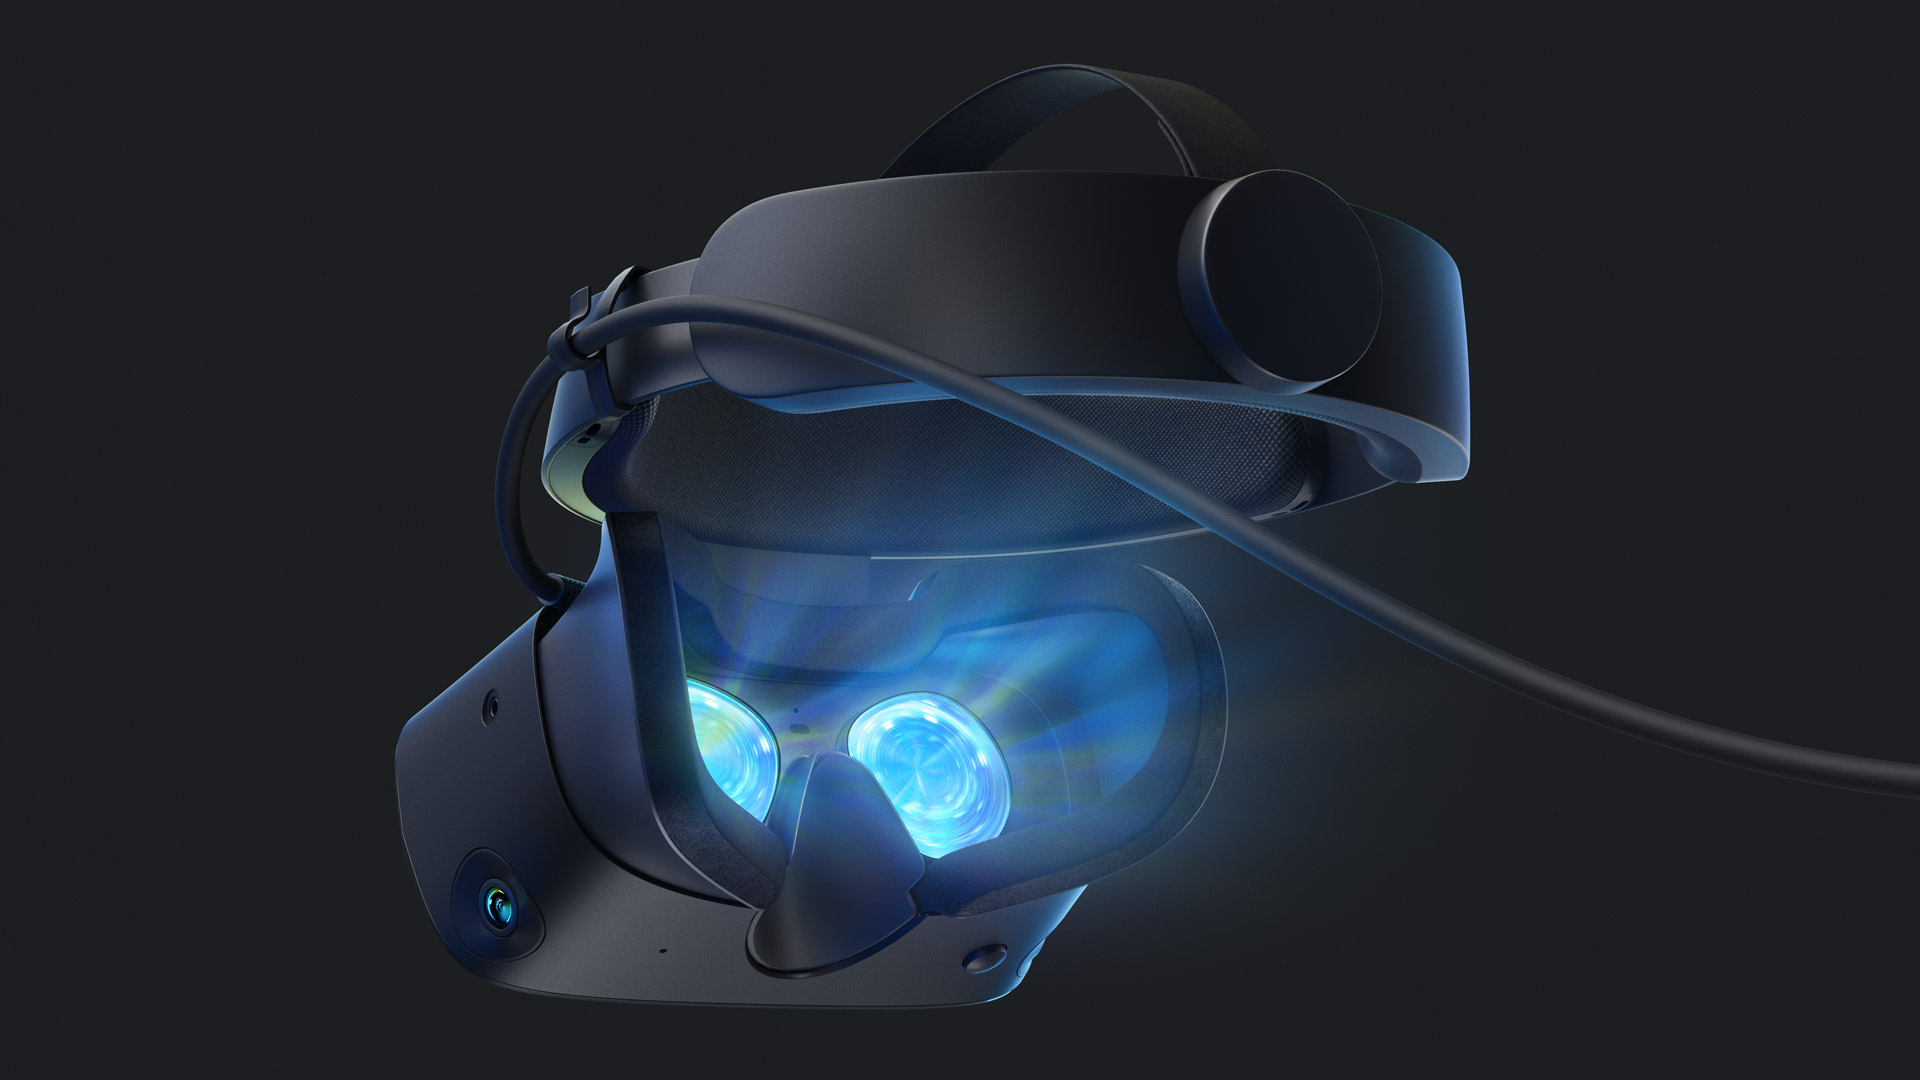 Rift S Isn't the Headset Fans Want, But Facebook Wagers It's